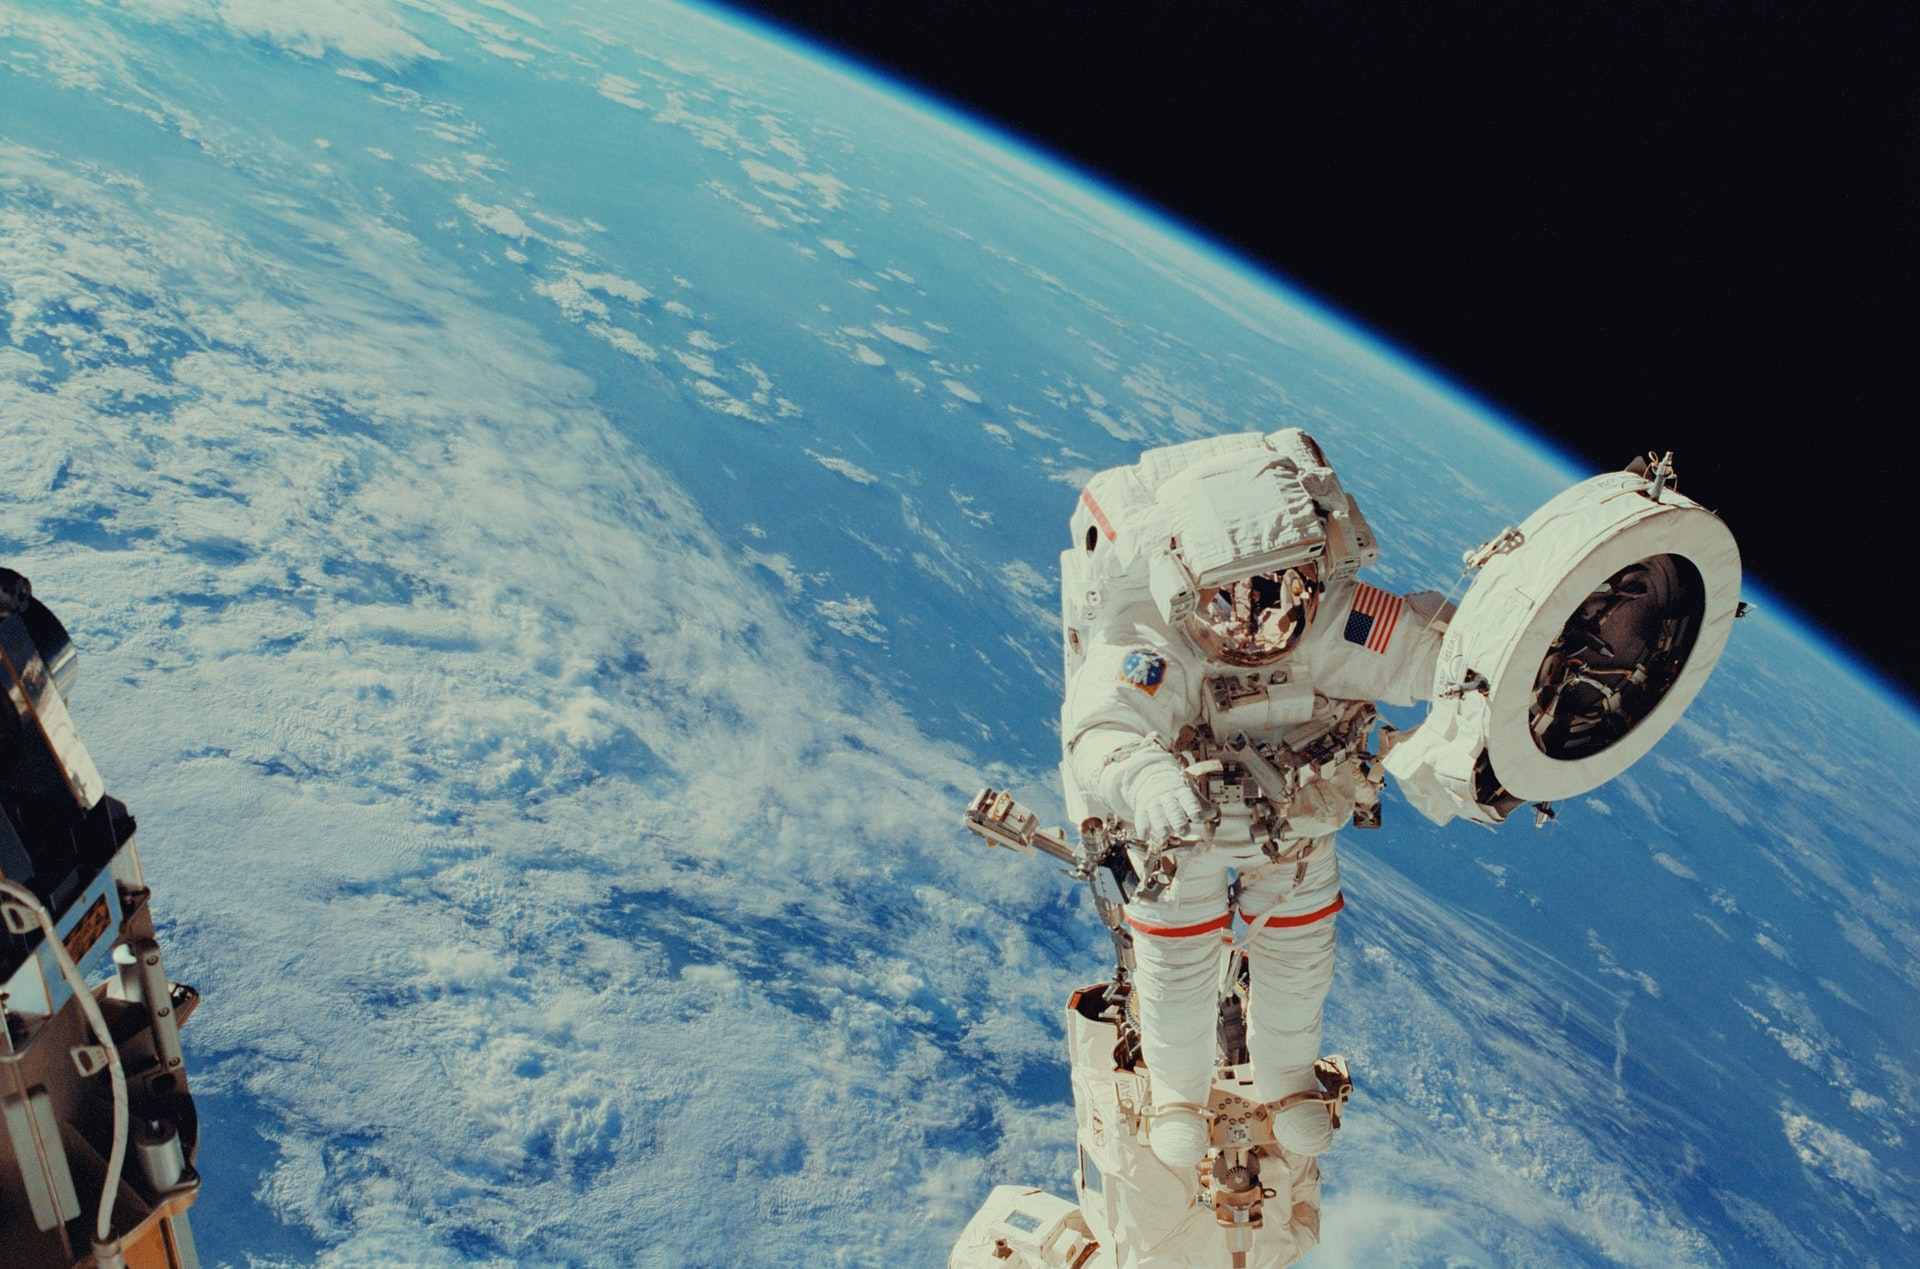 Photo: Astronaut Franklin R. Chang-Diaz works with a grapple fixture during extravehicular activity to perform work on the International Space Station. Credit: NASA.